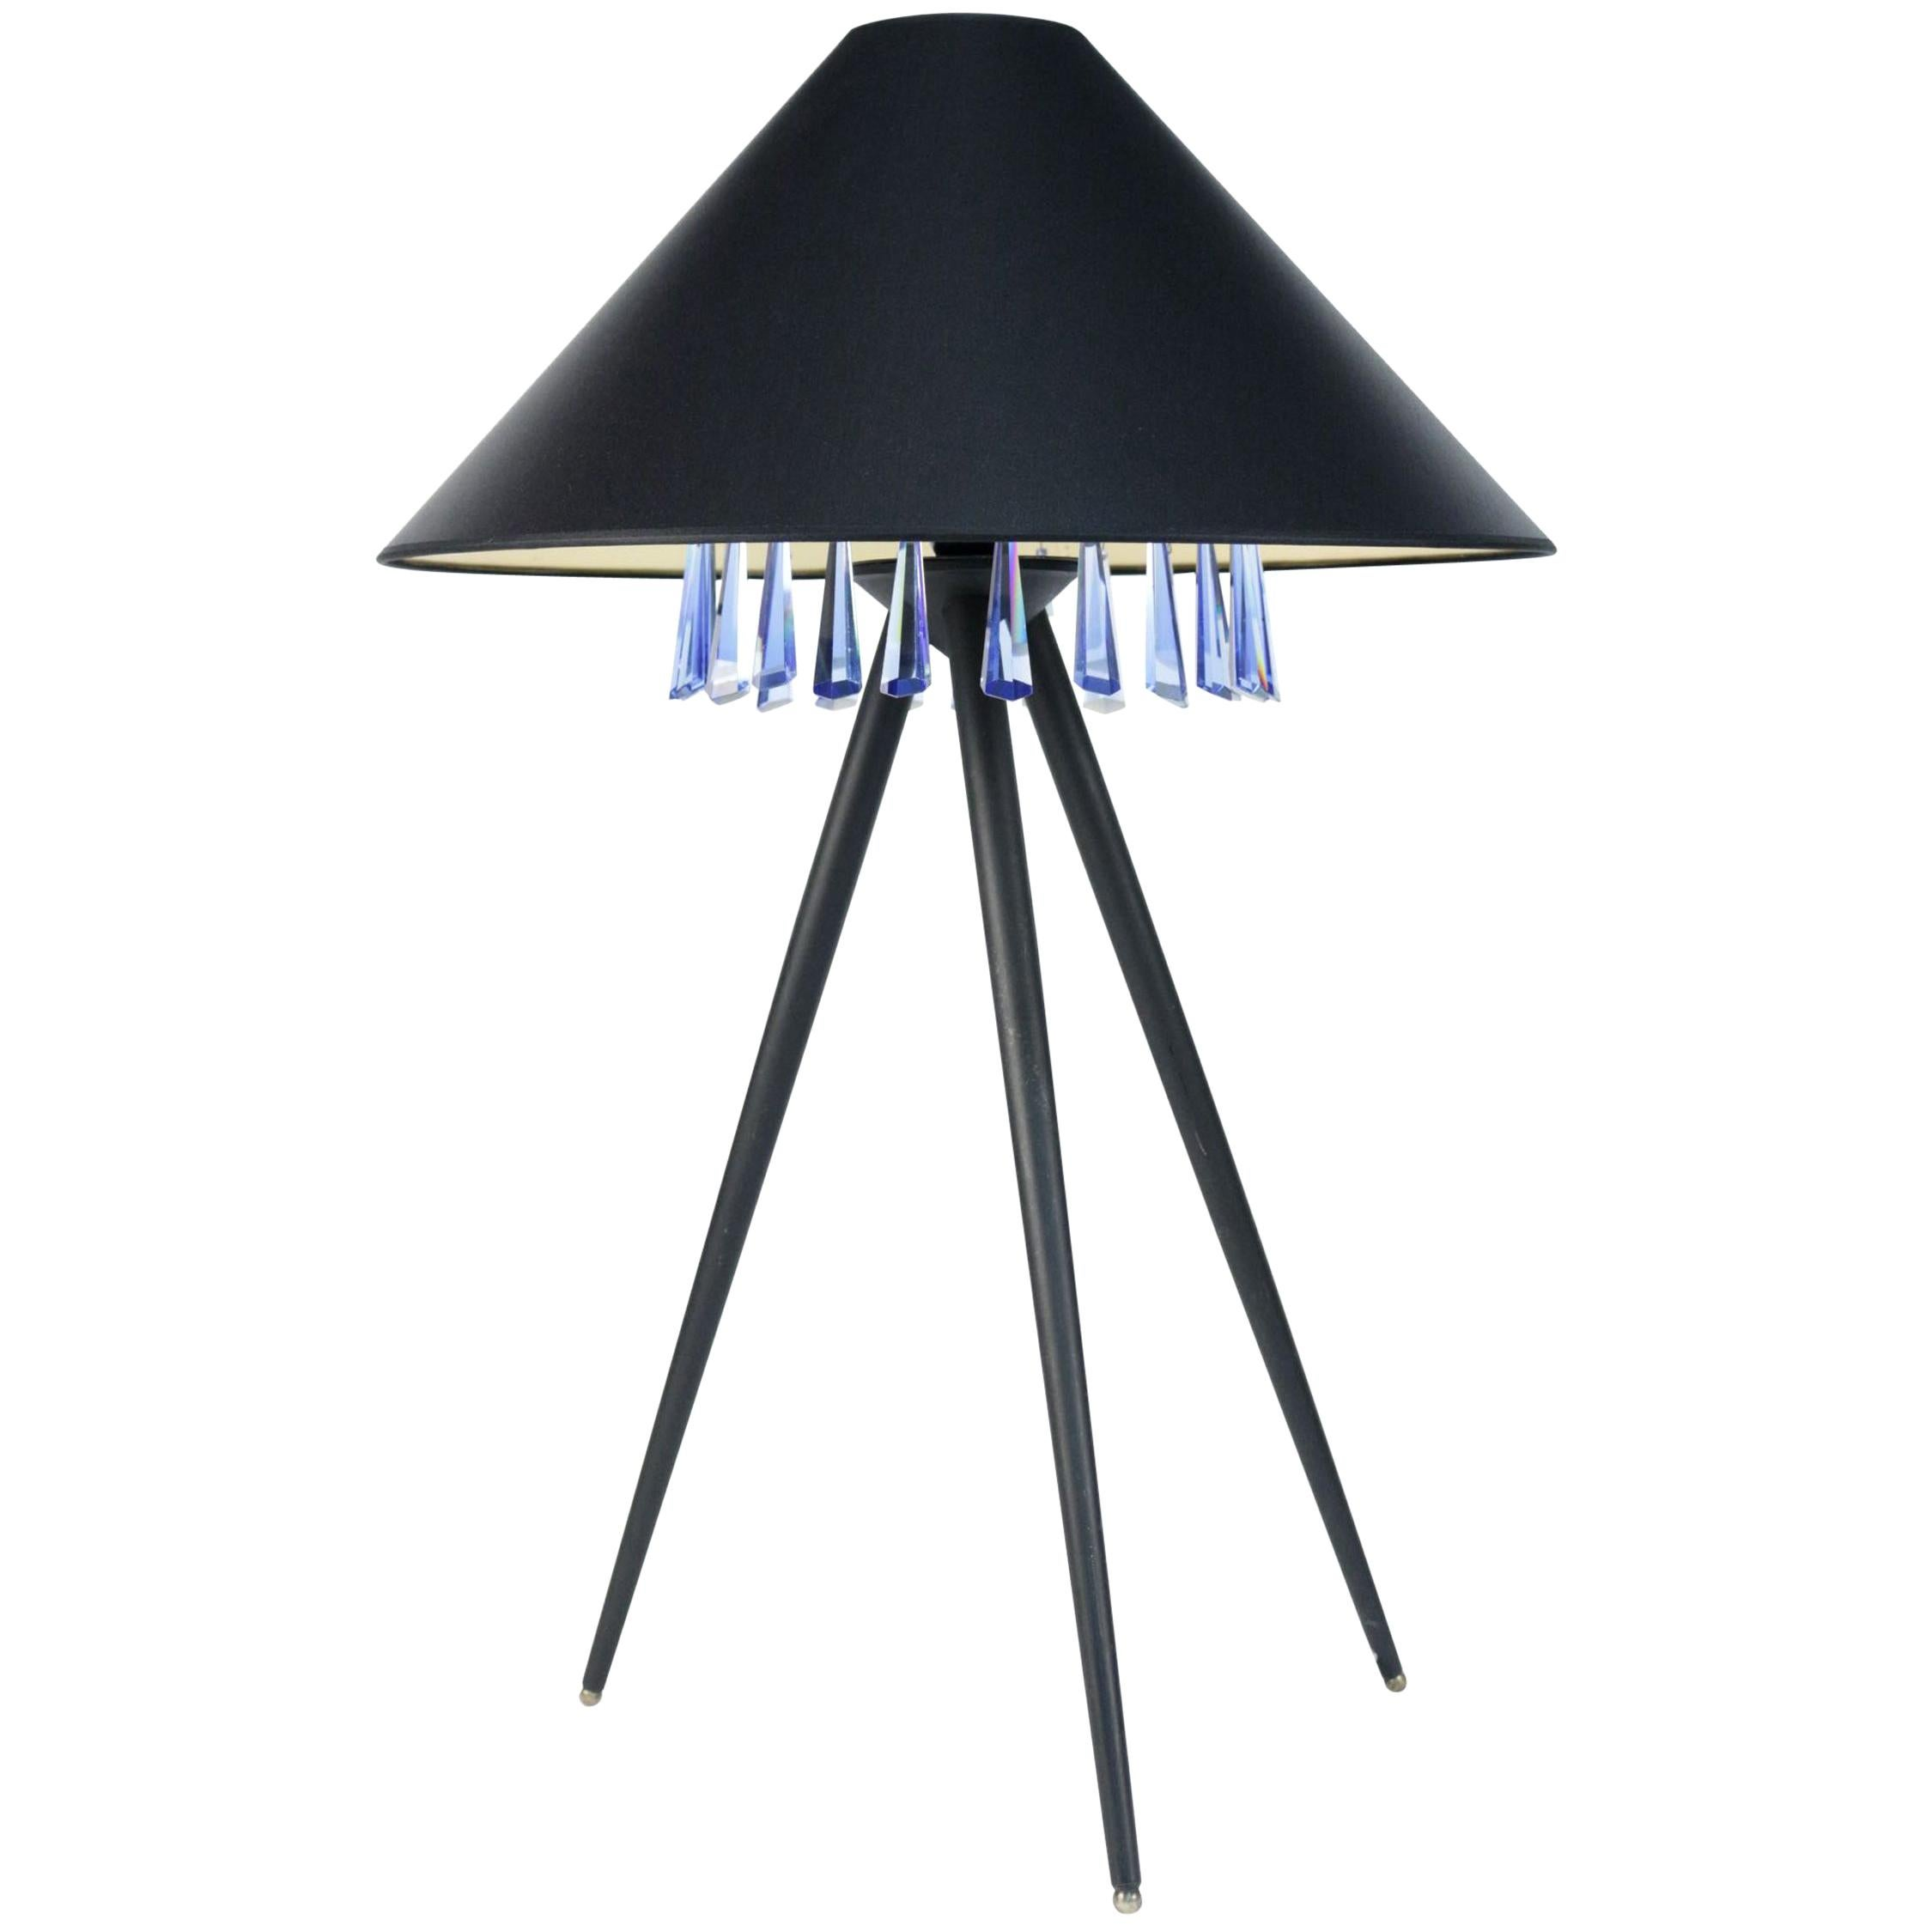 1970s Table Lamp by Chrystiane Charles, 1970 from Maison Charles